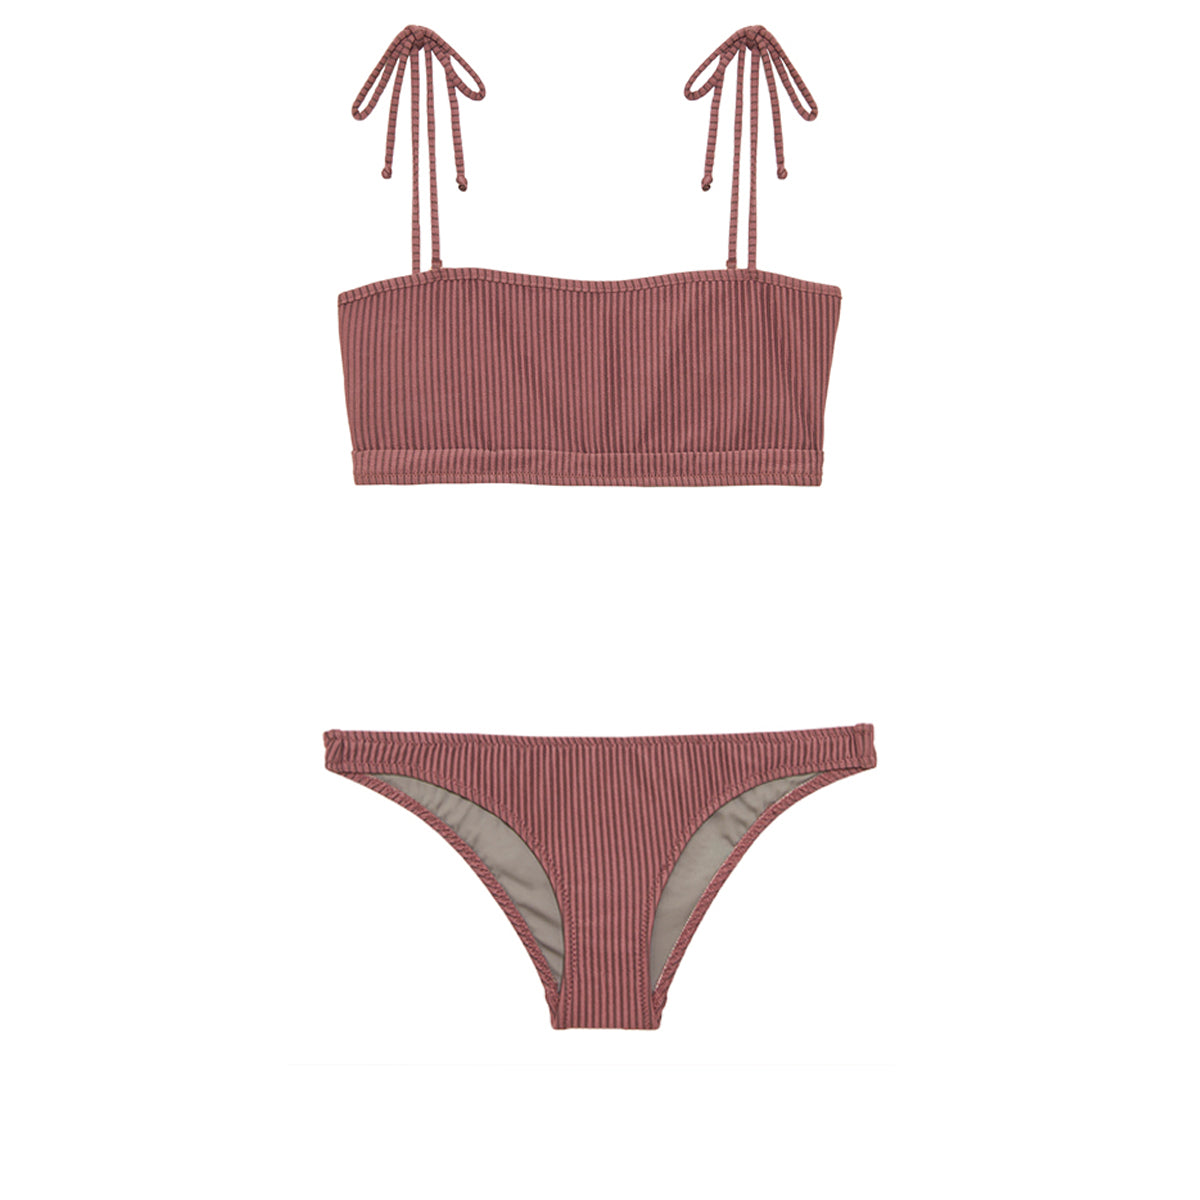 Mauve two piece swimsuit by Made by Dawn